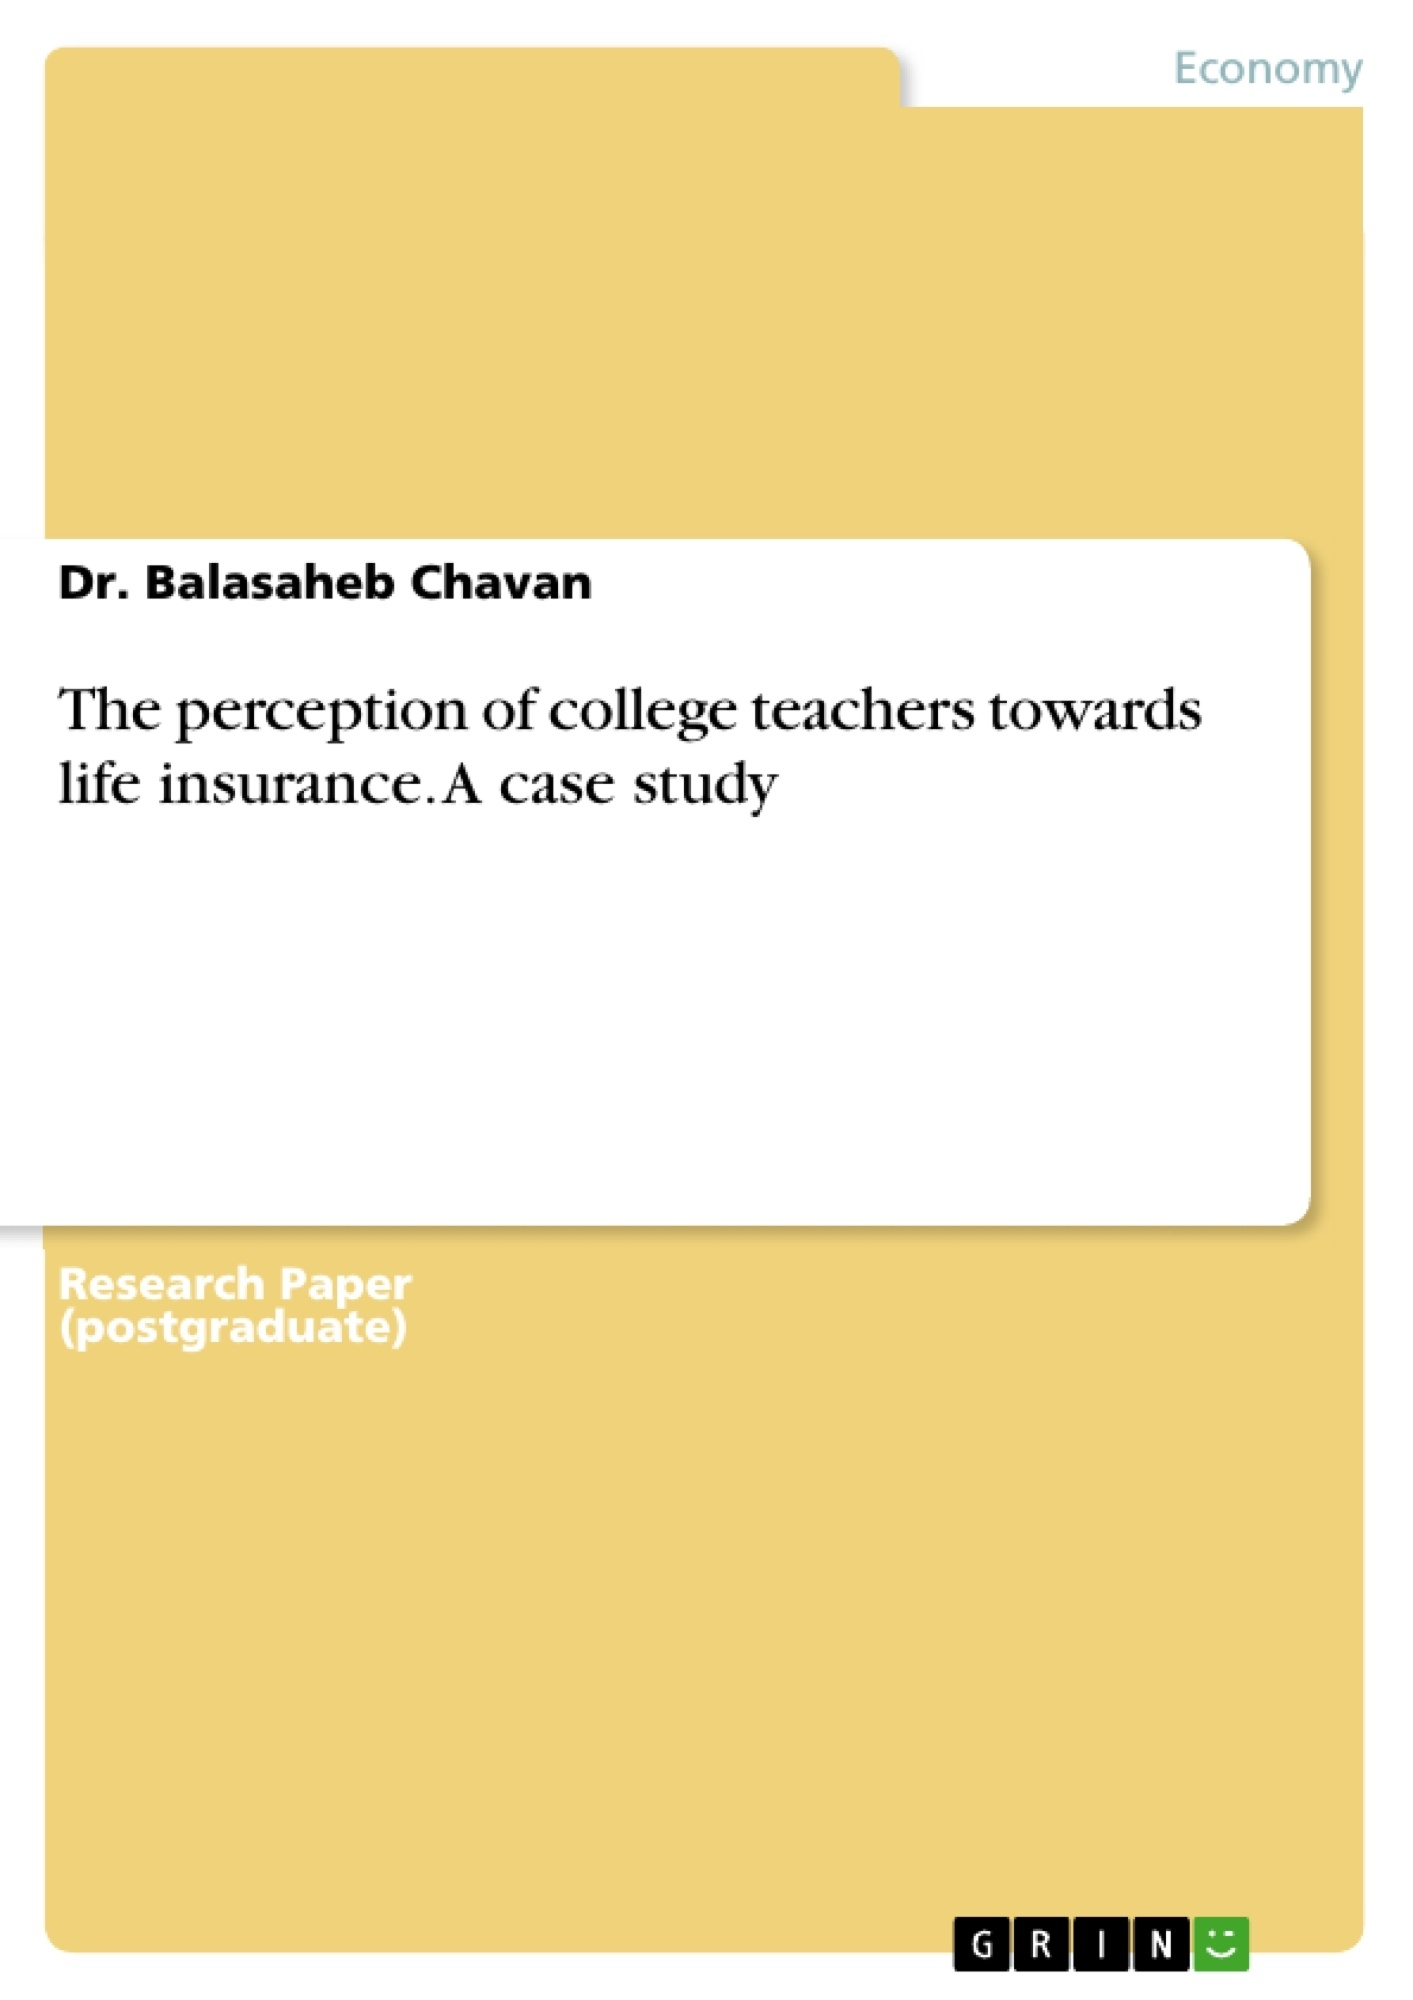 Title: The perception of college teachers towards life insurance. A case study